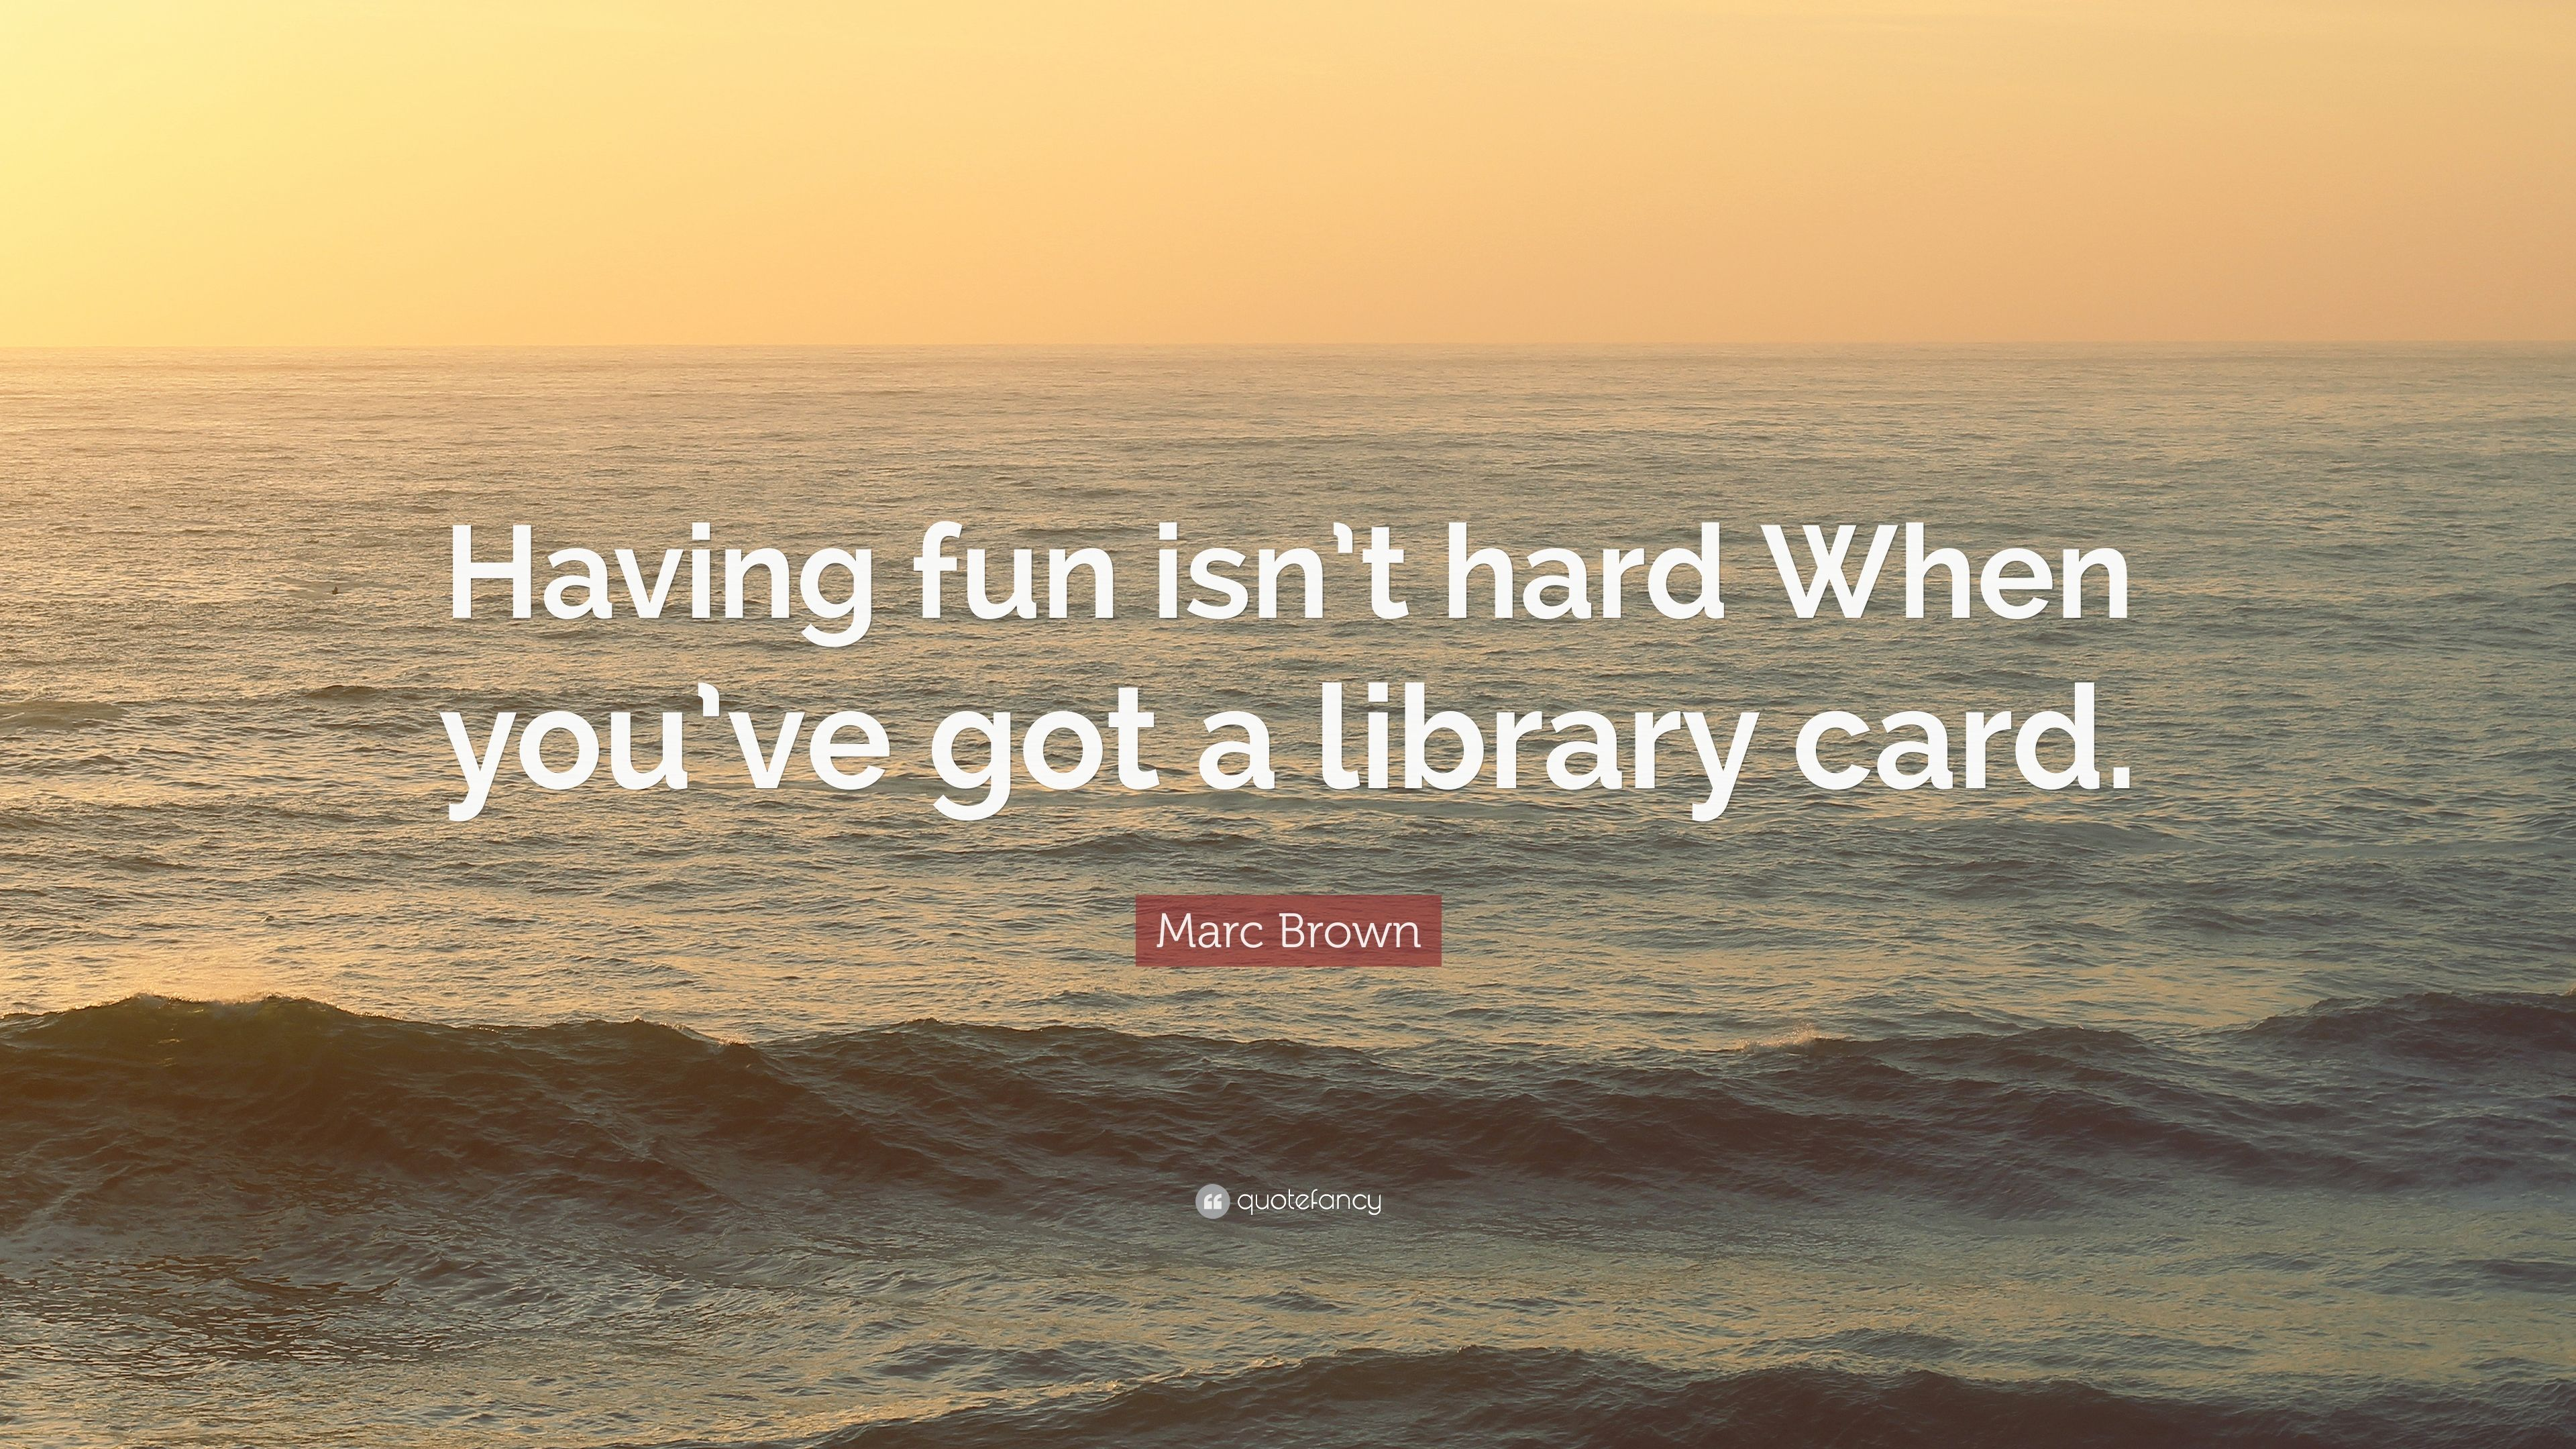 Image result for having fun isn't hard when you've got a library card